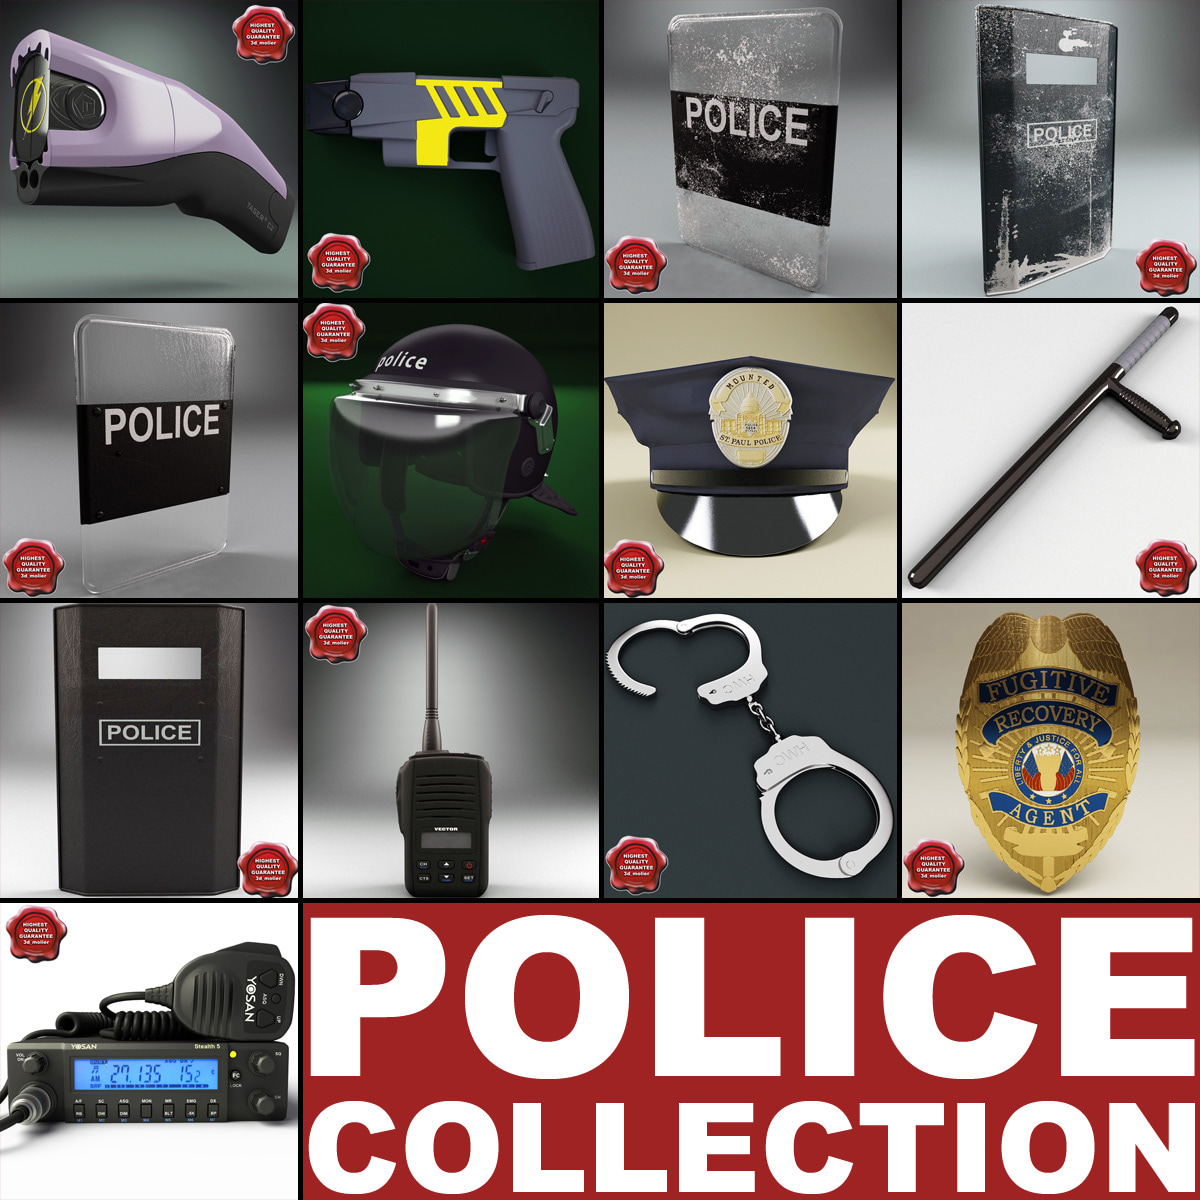 Police_Equipment_Collection_V3_000.jpg